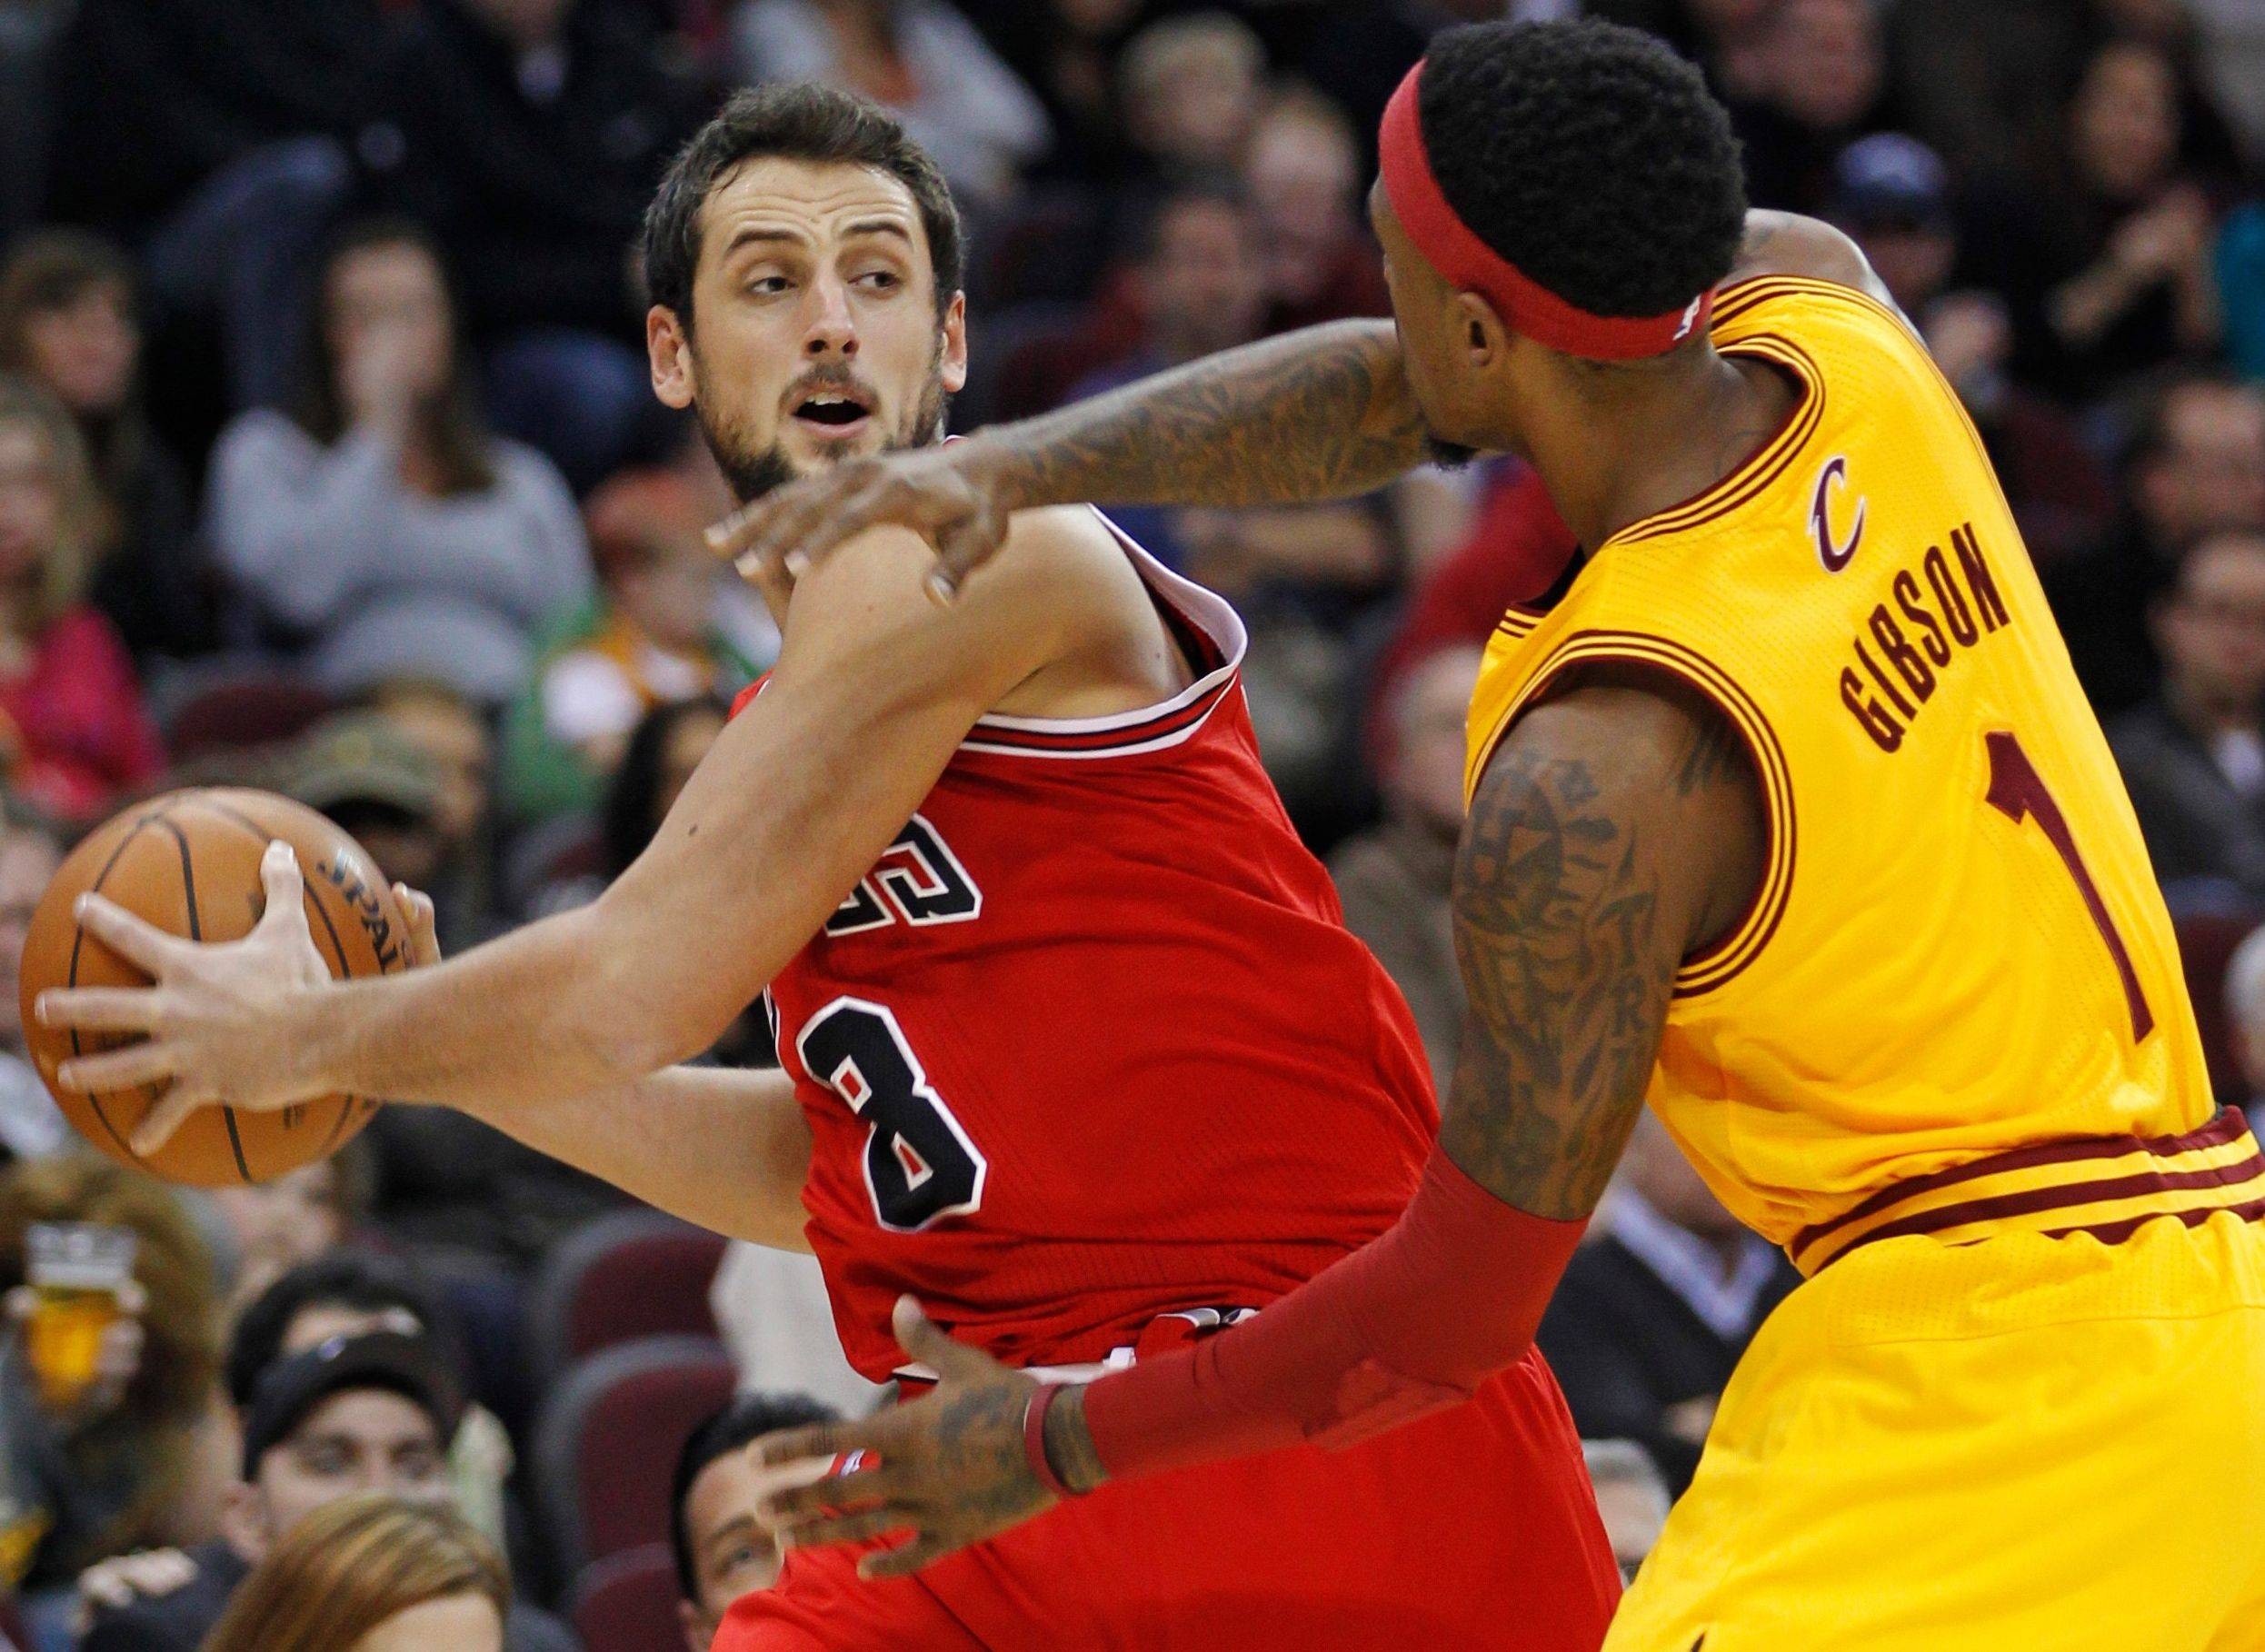 Marco Belinelli is pressured by Cleveland's Daniel Gibson on Wednesday. Belinelli scored a season-high 23 points and hit 7 of 15 field goals.